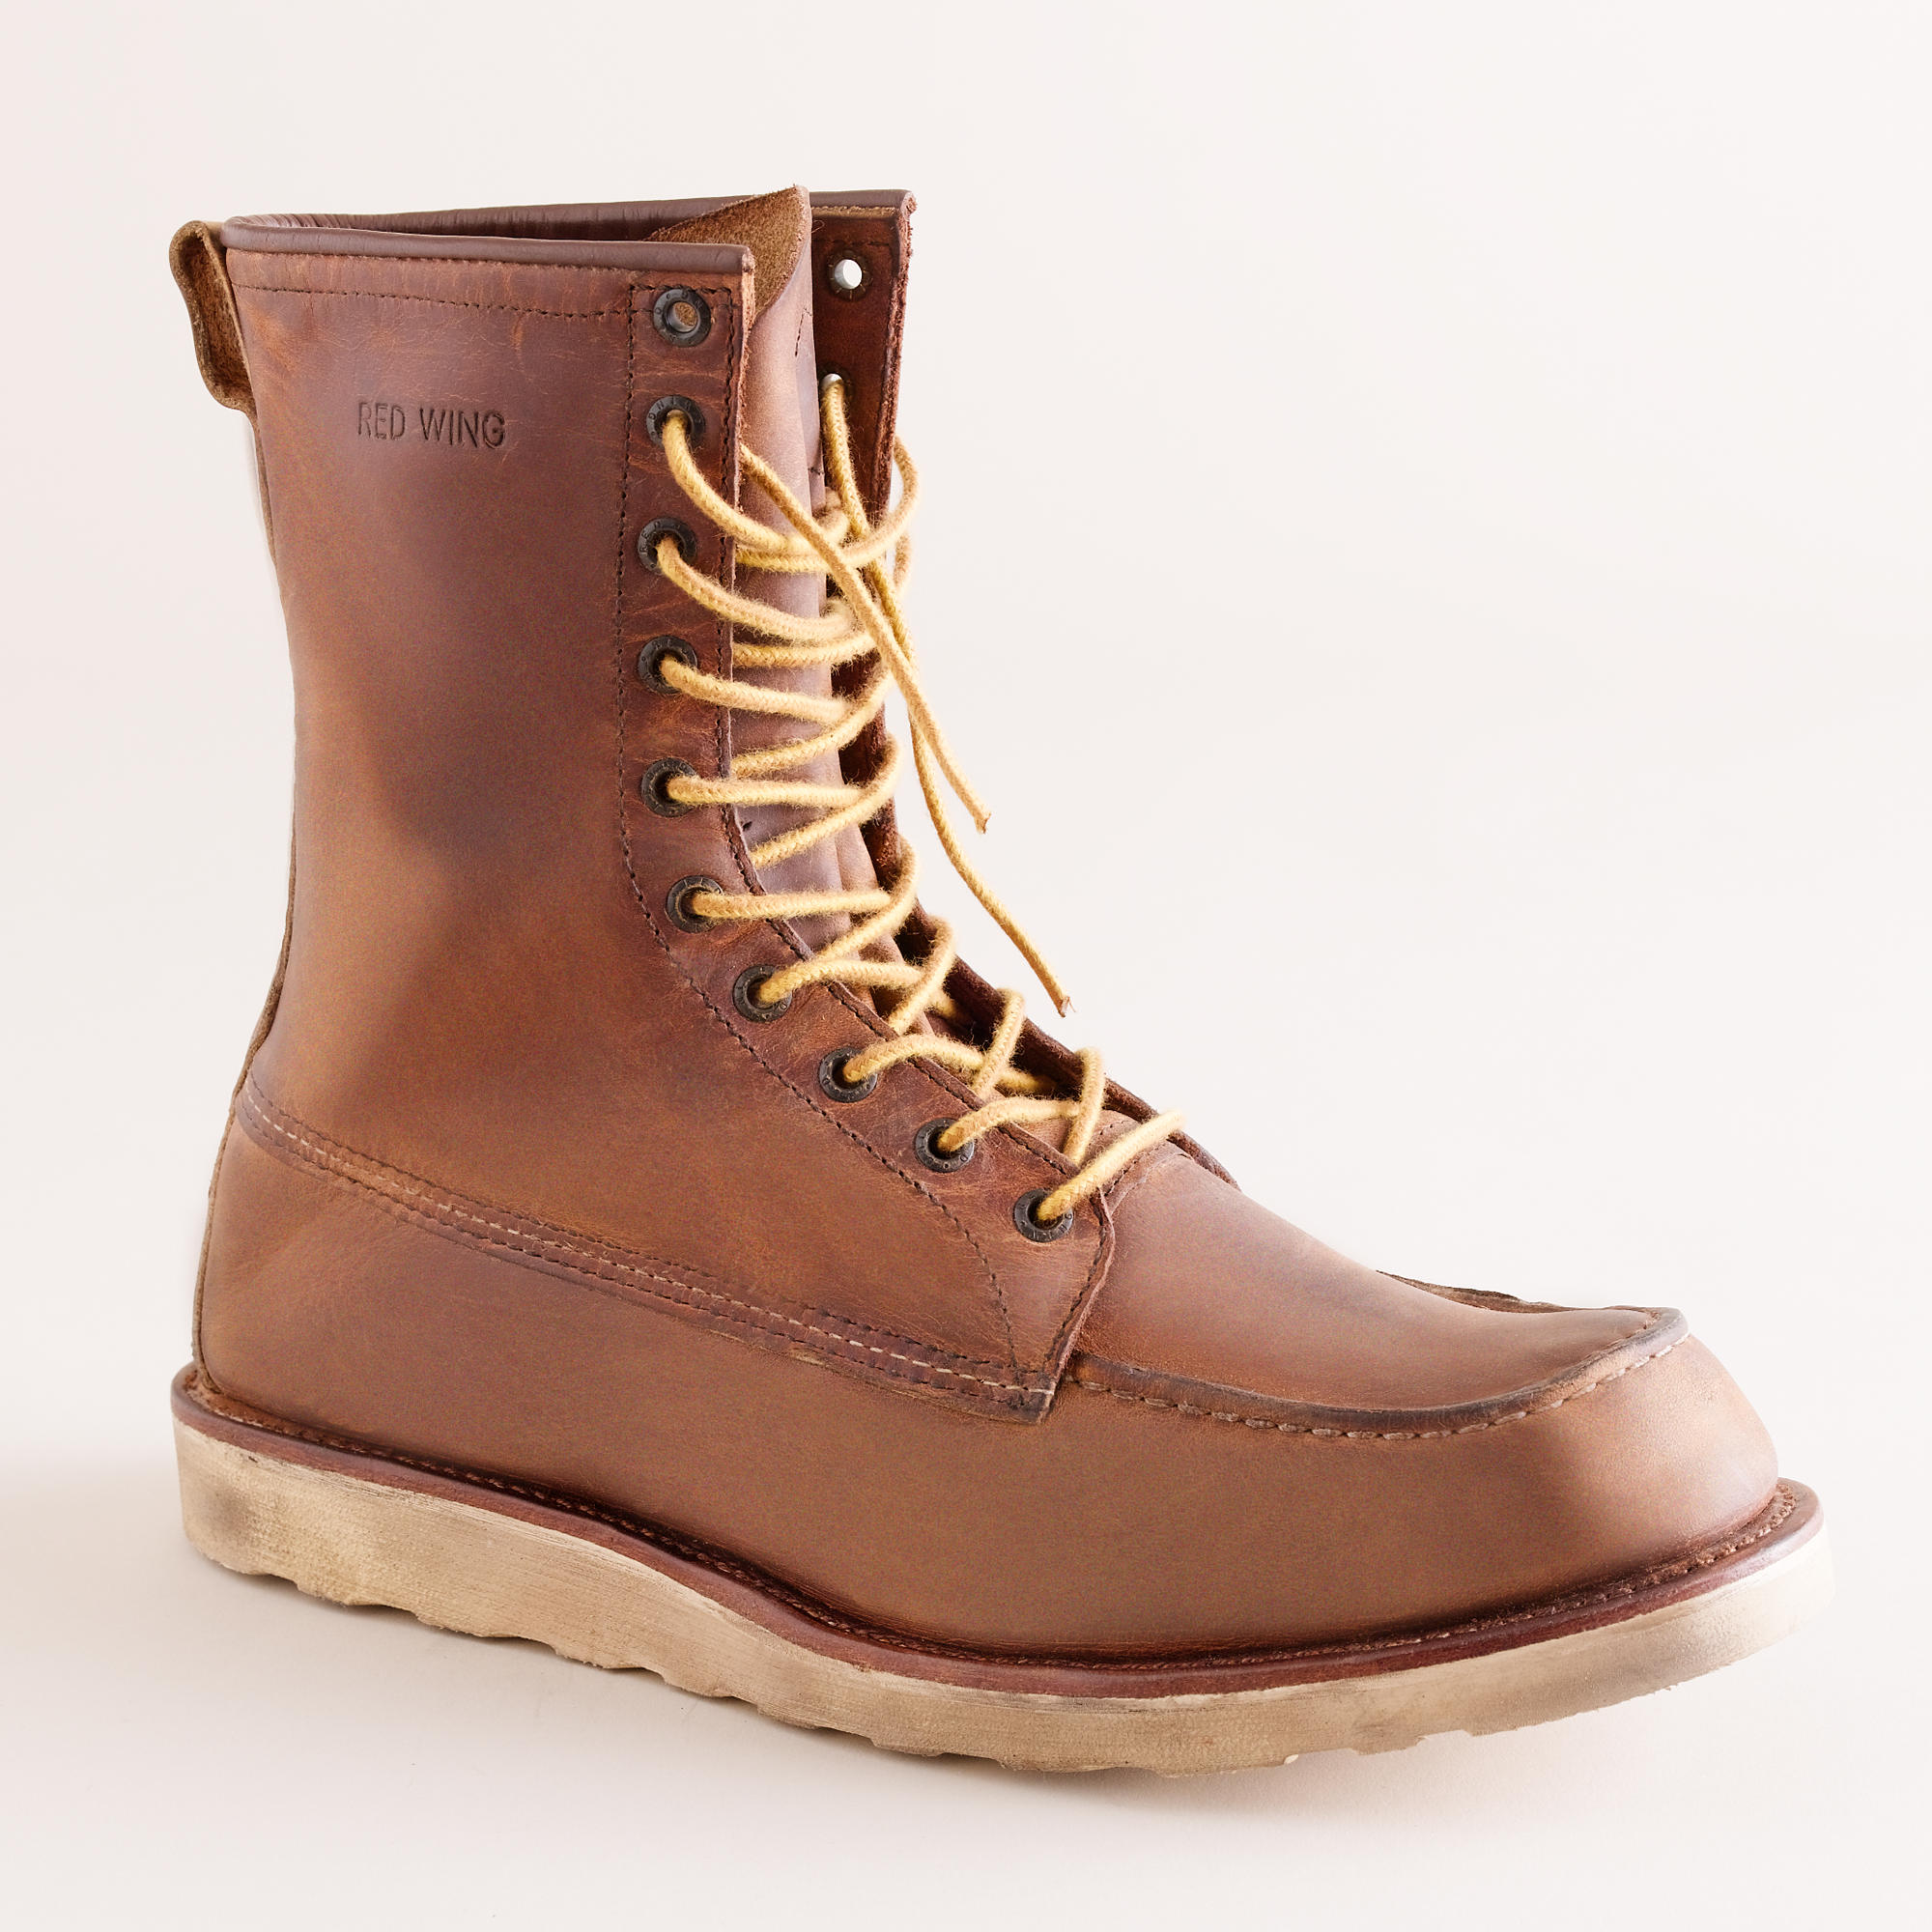 Red Wing classic Irish Setter boots : | J.Crew